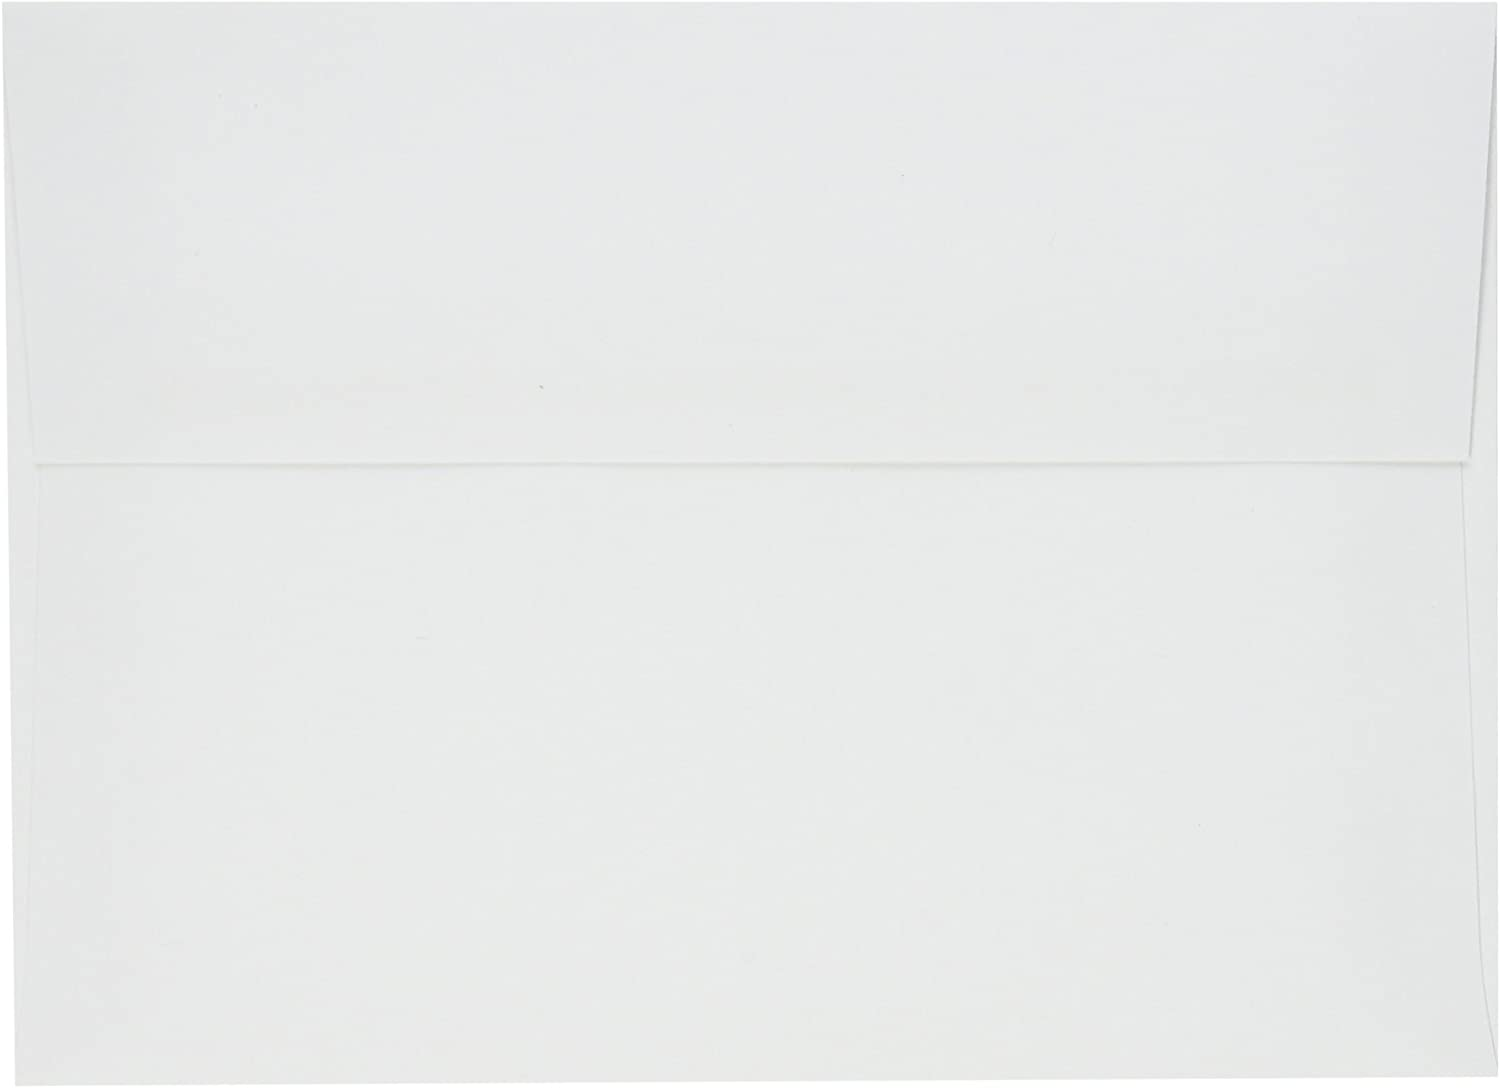 LUXPaper A7 Invitation Envelopes for 5 x 7 Cards in 60lb. White, Printable Envelopes for Invitations, w/Peel and Press Seal, 50 Pack, Envelope Size 5 1/4 x 7 1/4 (White)